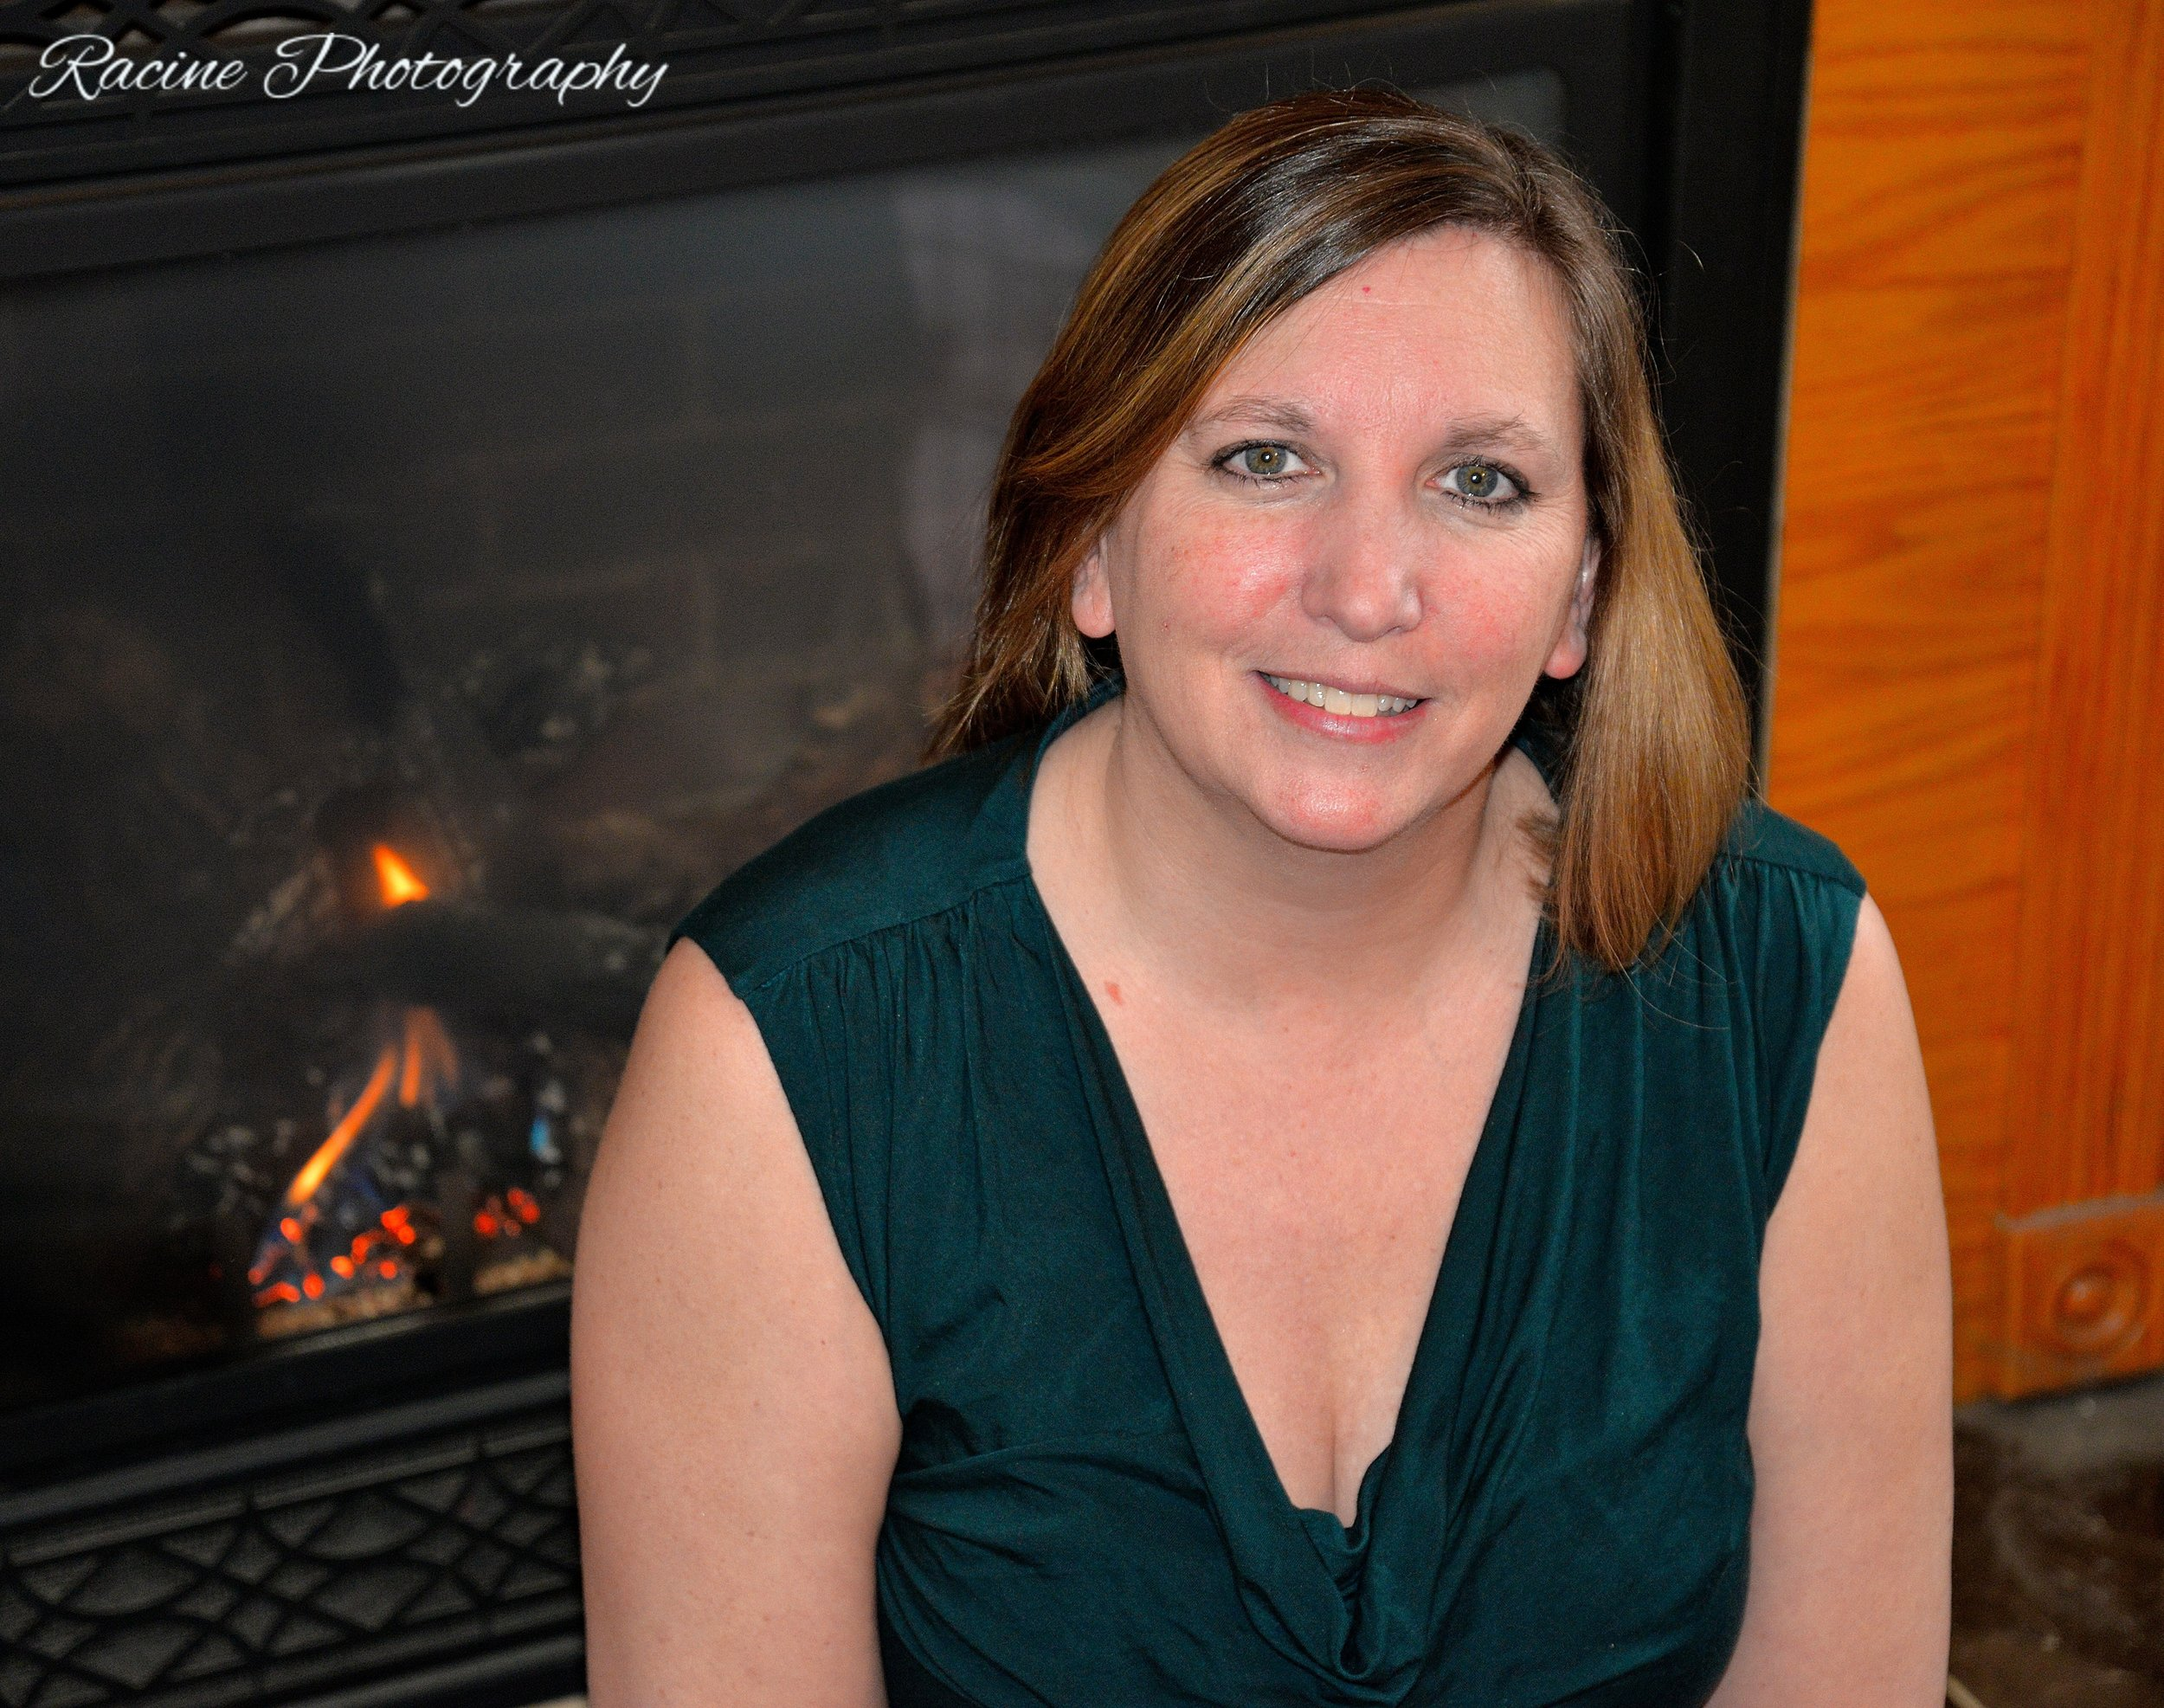 - Emma Leigh Reed, originally from New Hampshire, now resides in Tennessee. She has fond memories of the Maine coastline and incorporates the ocean into all her books. She has three grown children and is enjoying her empty nest. Her life has been touched and changed by her son's autism - she views life through a very different lens than before he was born. Growing up as an avid reader, it was only natural for Emma Leigh to turn to creating the stories for others to enjoy. Emma Leigh continues to learn through her children's strength and abilities that pushes her to go outside her comfort zone on a regular basis. She is the author of romantic suspense, women's fiction and has co-authored children's books.